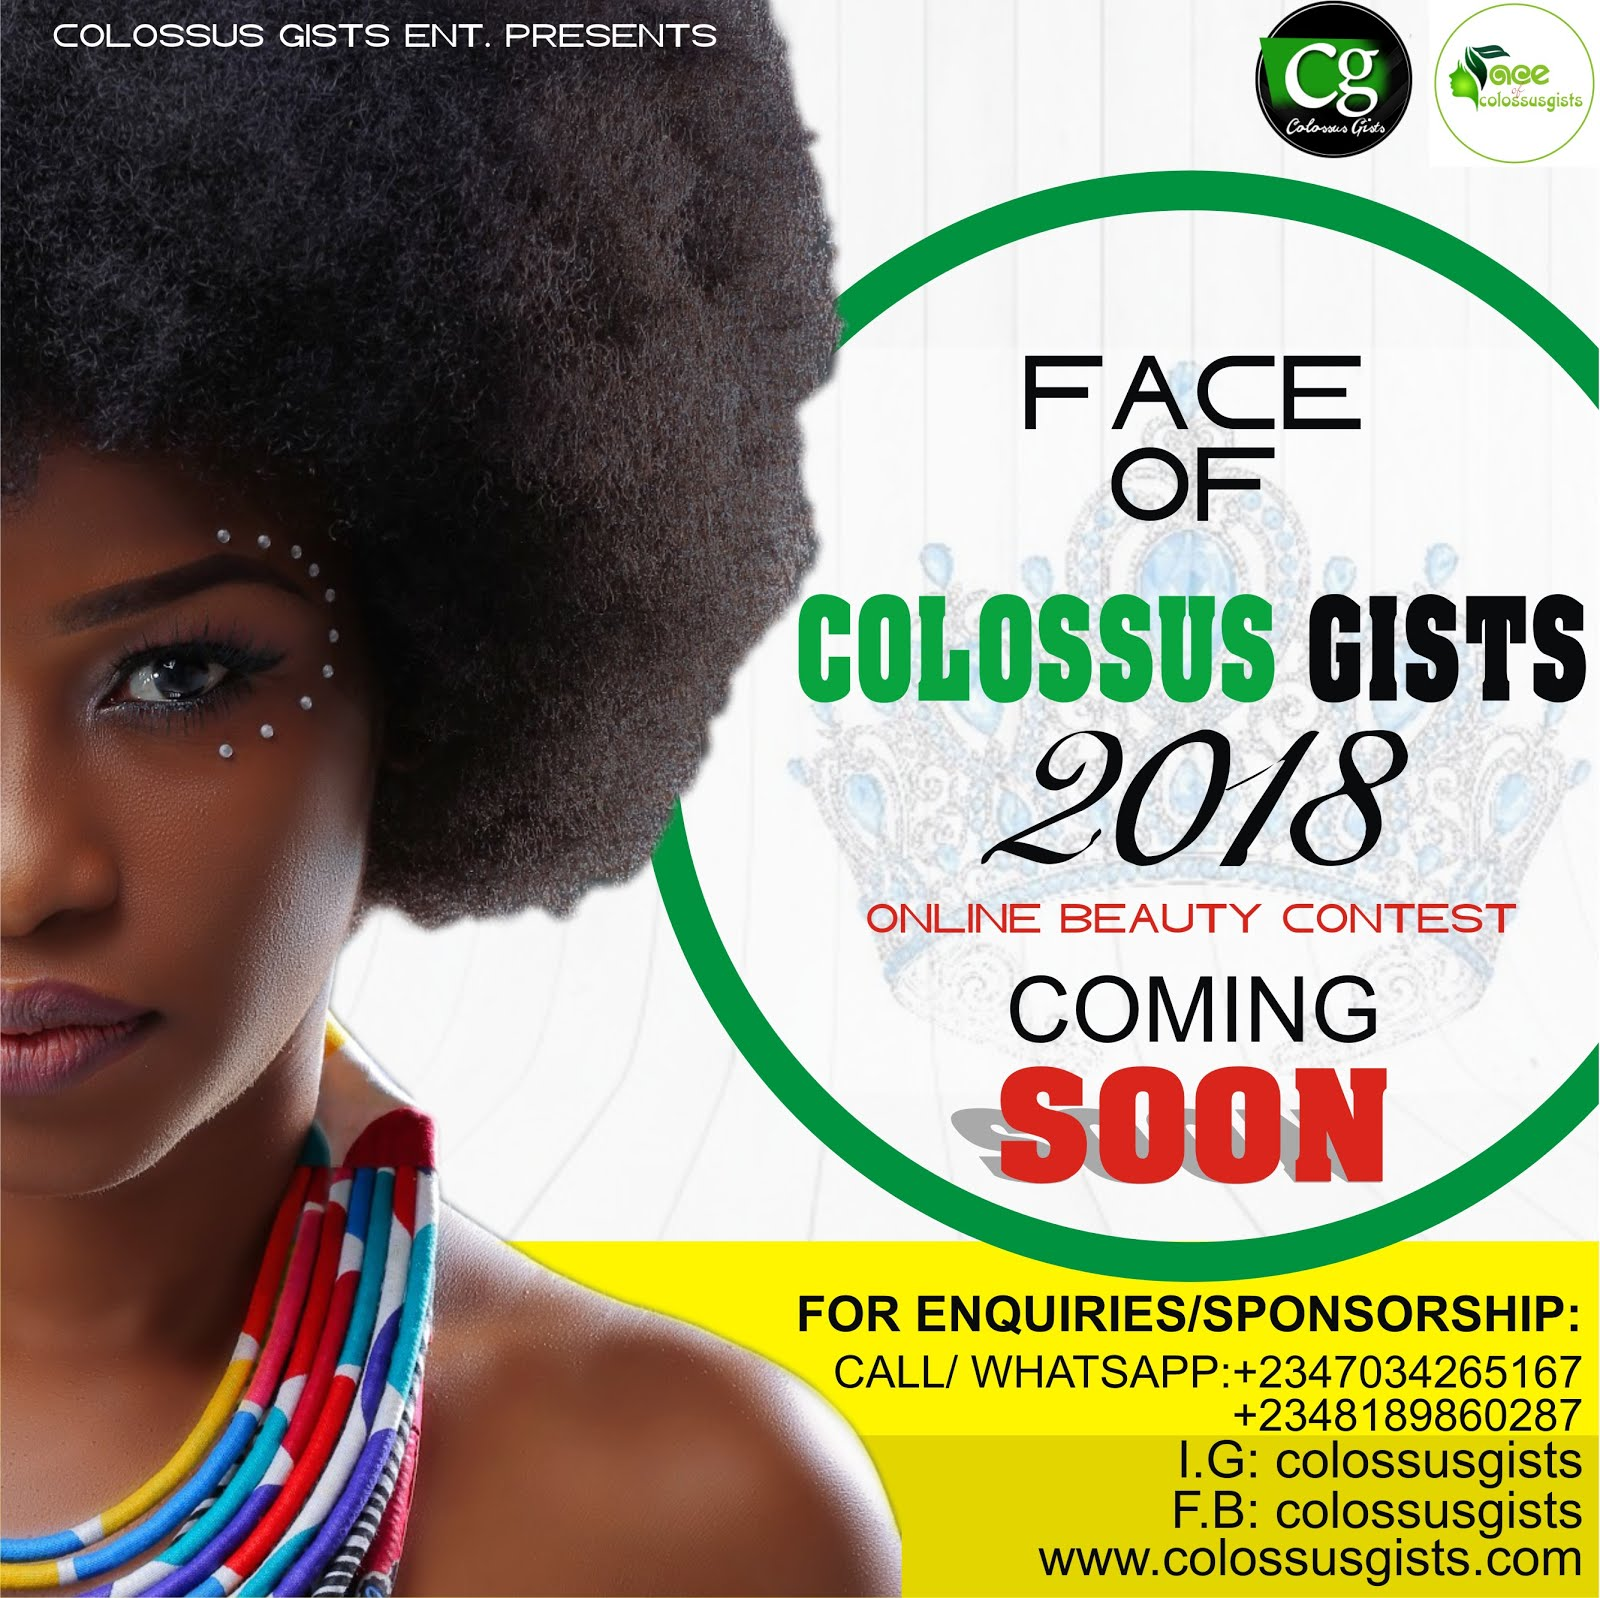 #Anticipate - Face of Colossus Gists